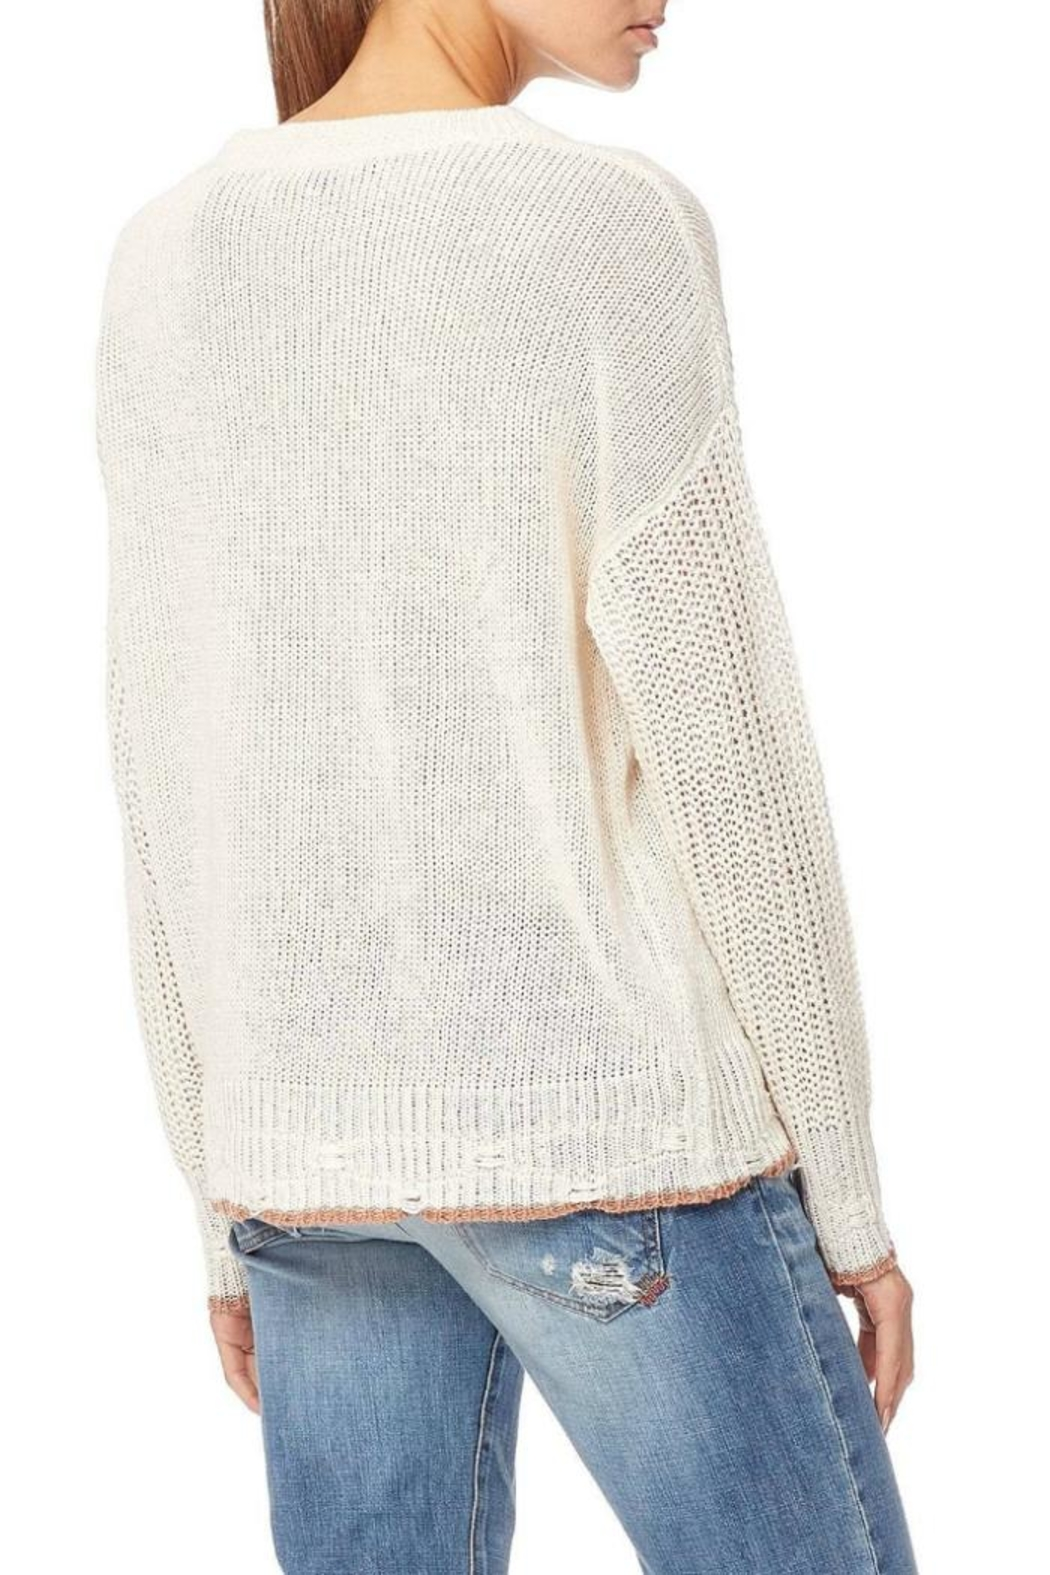 Skull Cashmere Grecia Knit Sweater - Front Full Image